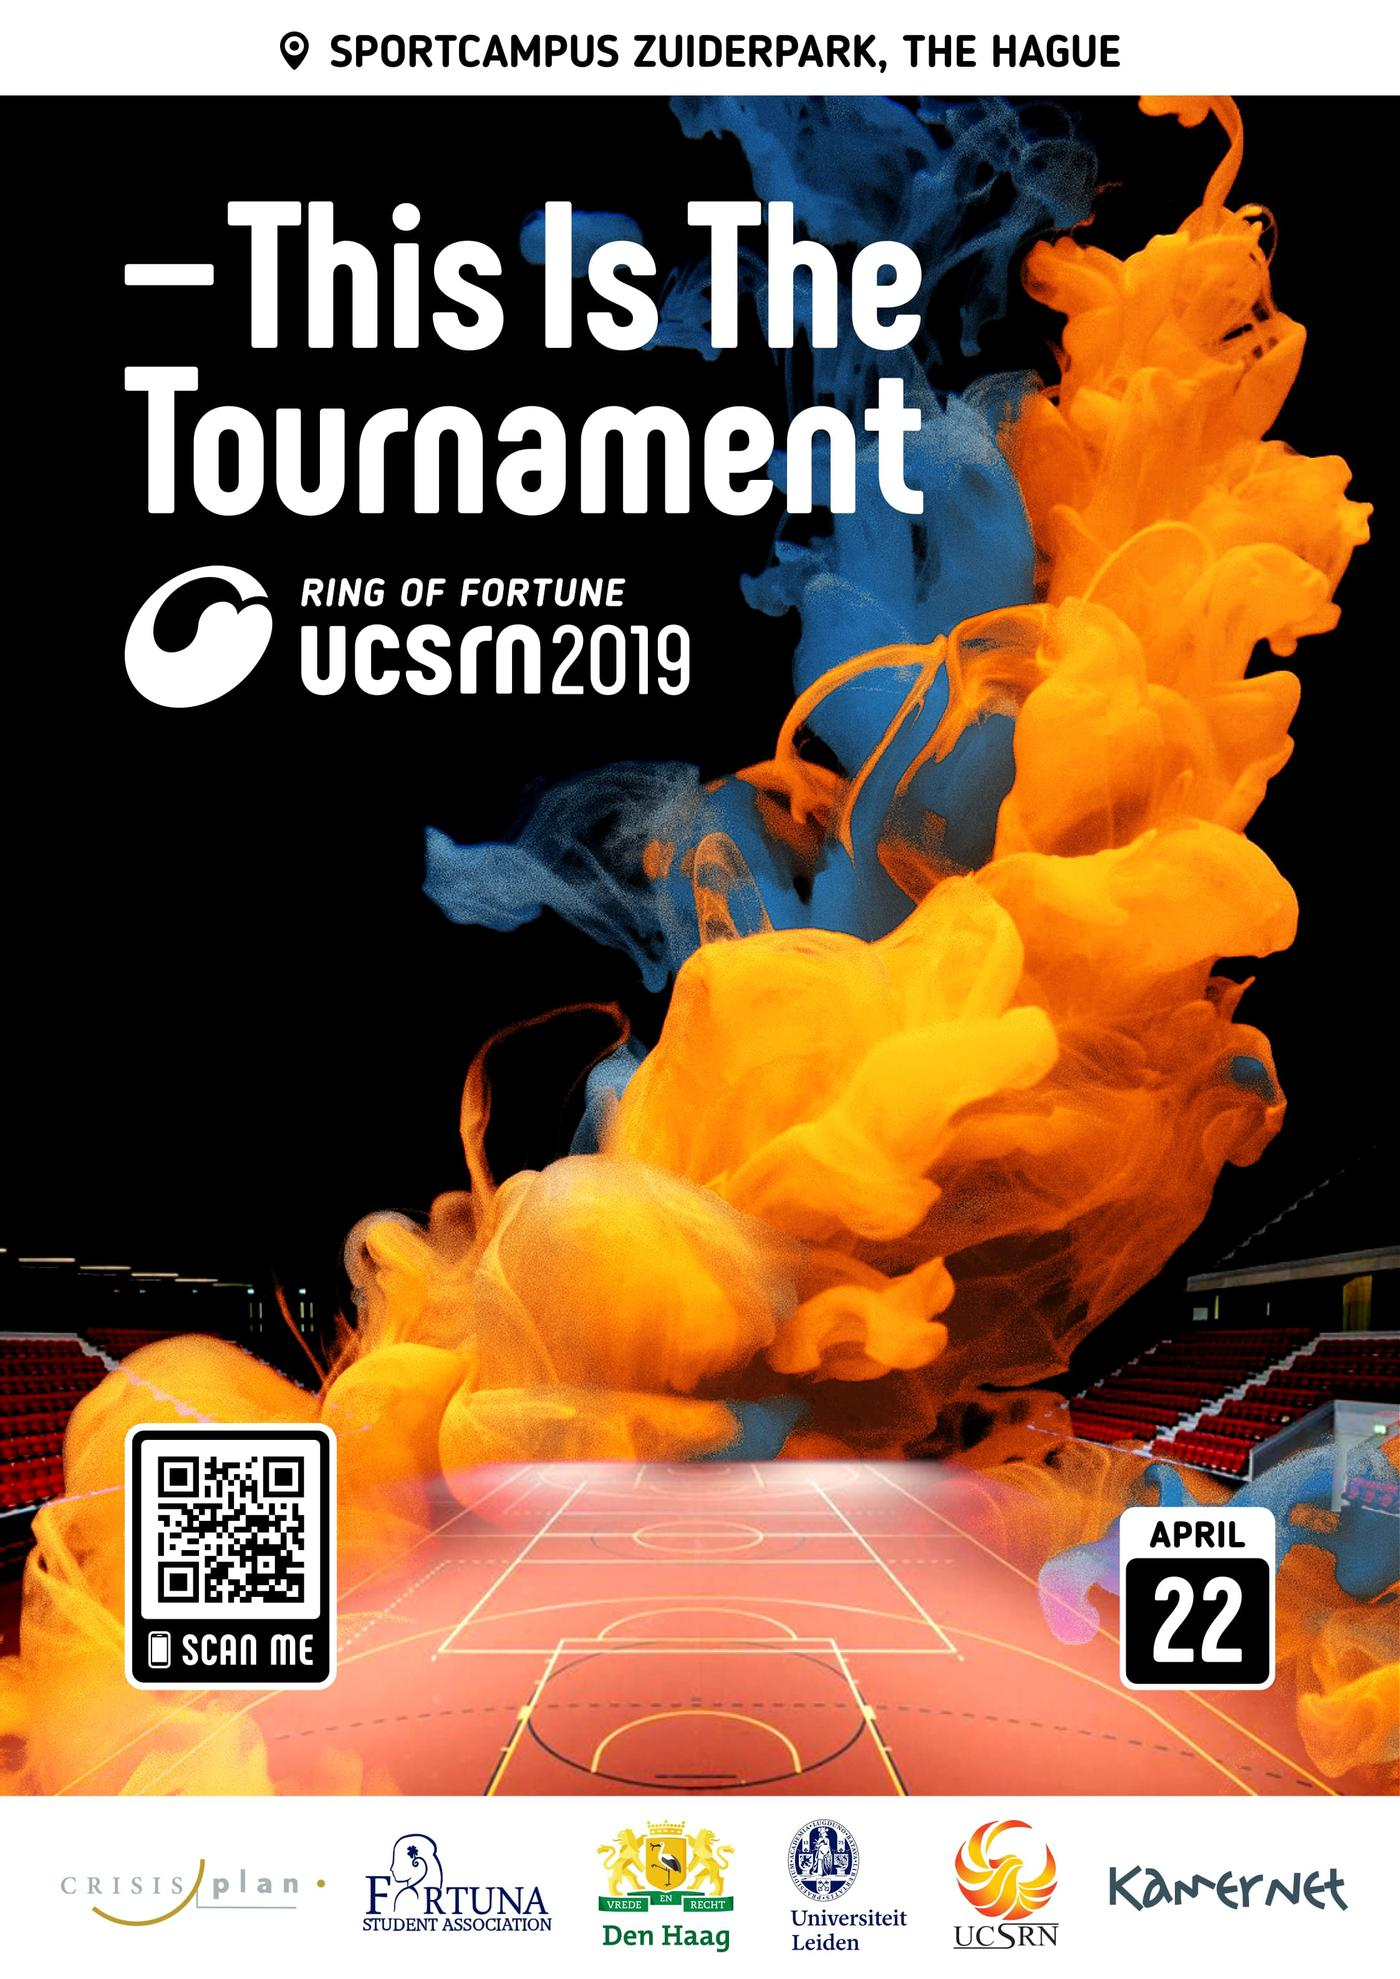 UCSRN Tournament: The Ring of Fortune